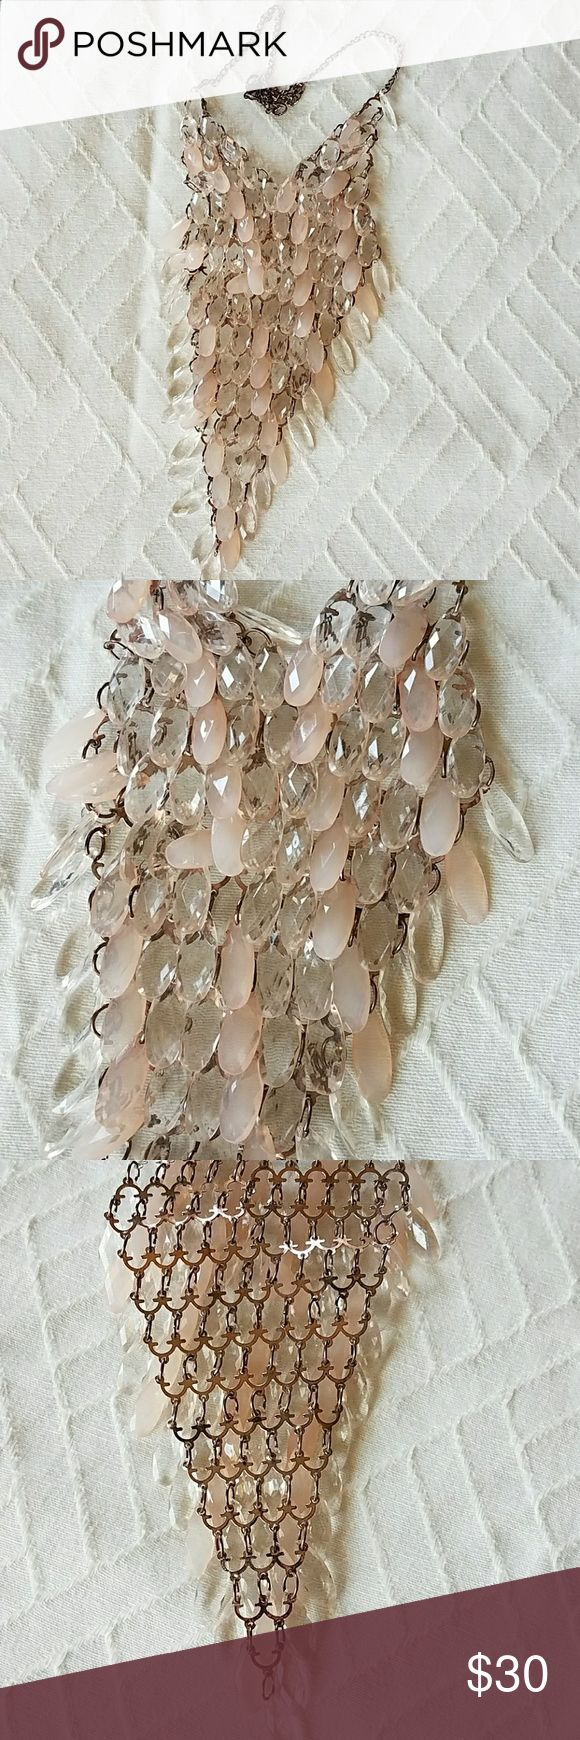 """VINTAGE PINK PLASTIC  BIB NECKLACE RUNWAY Appears a couple BEADS are missing  and some wear to finish.  Still wears gorgeous! Brassy color metal Bib length approx. 8"""" Jewelry Necklaces"""